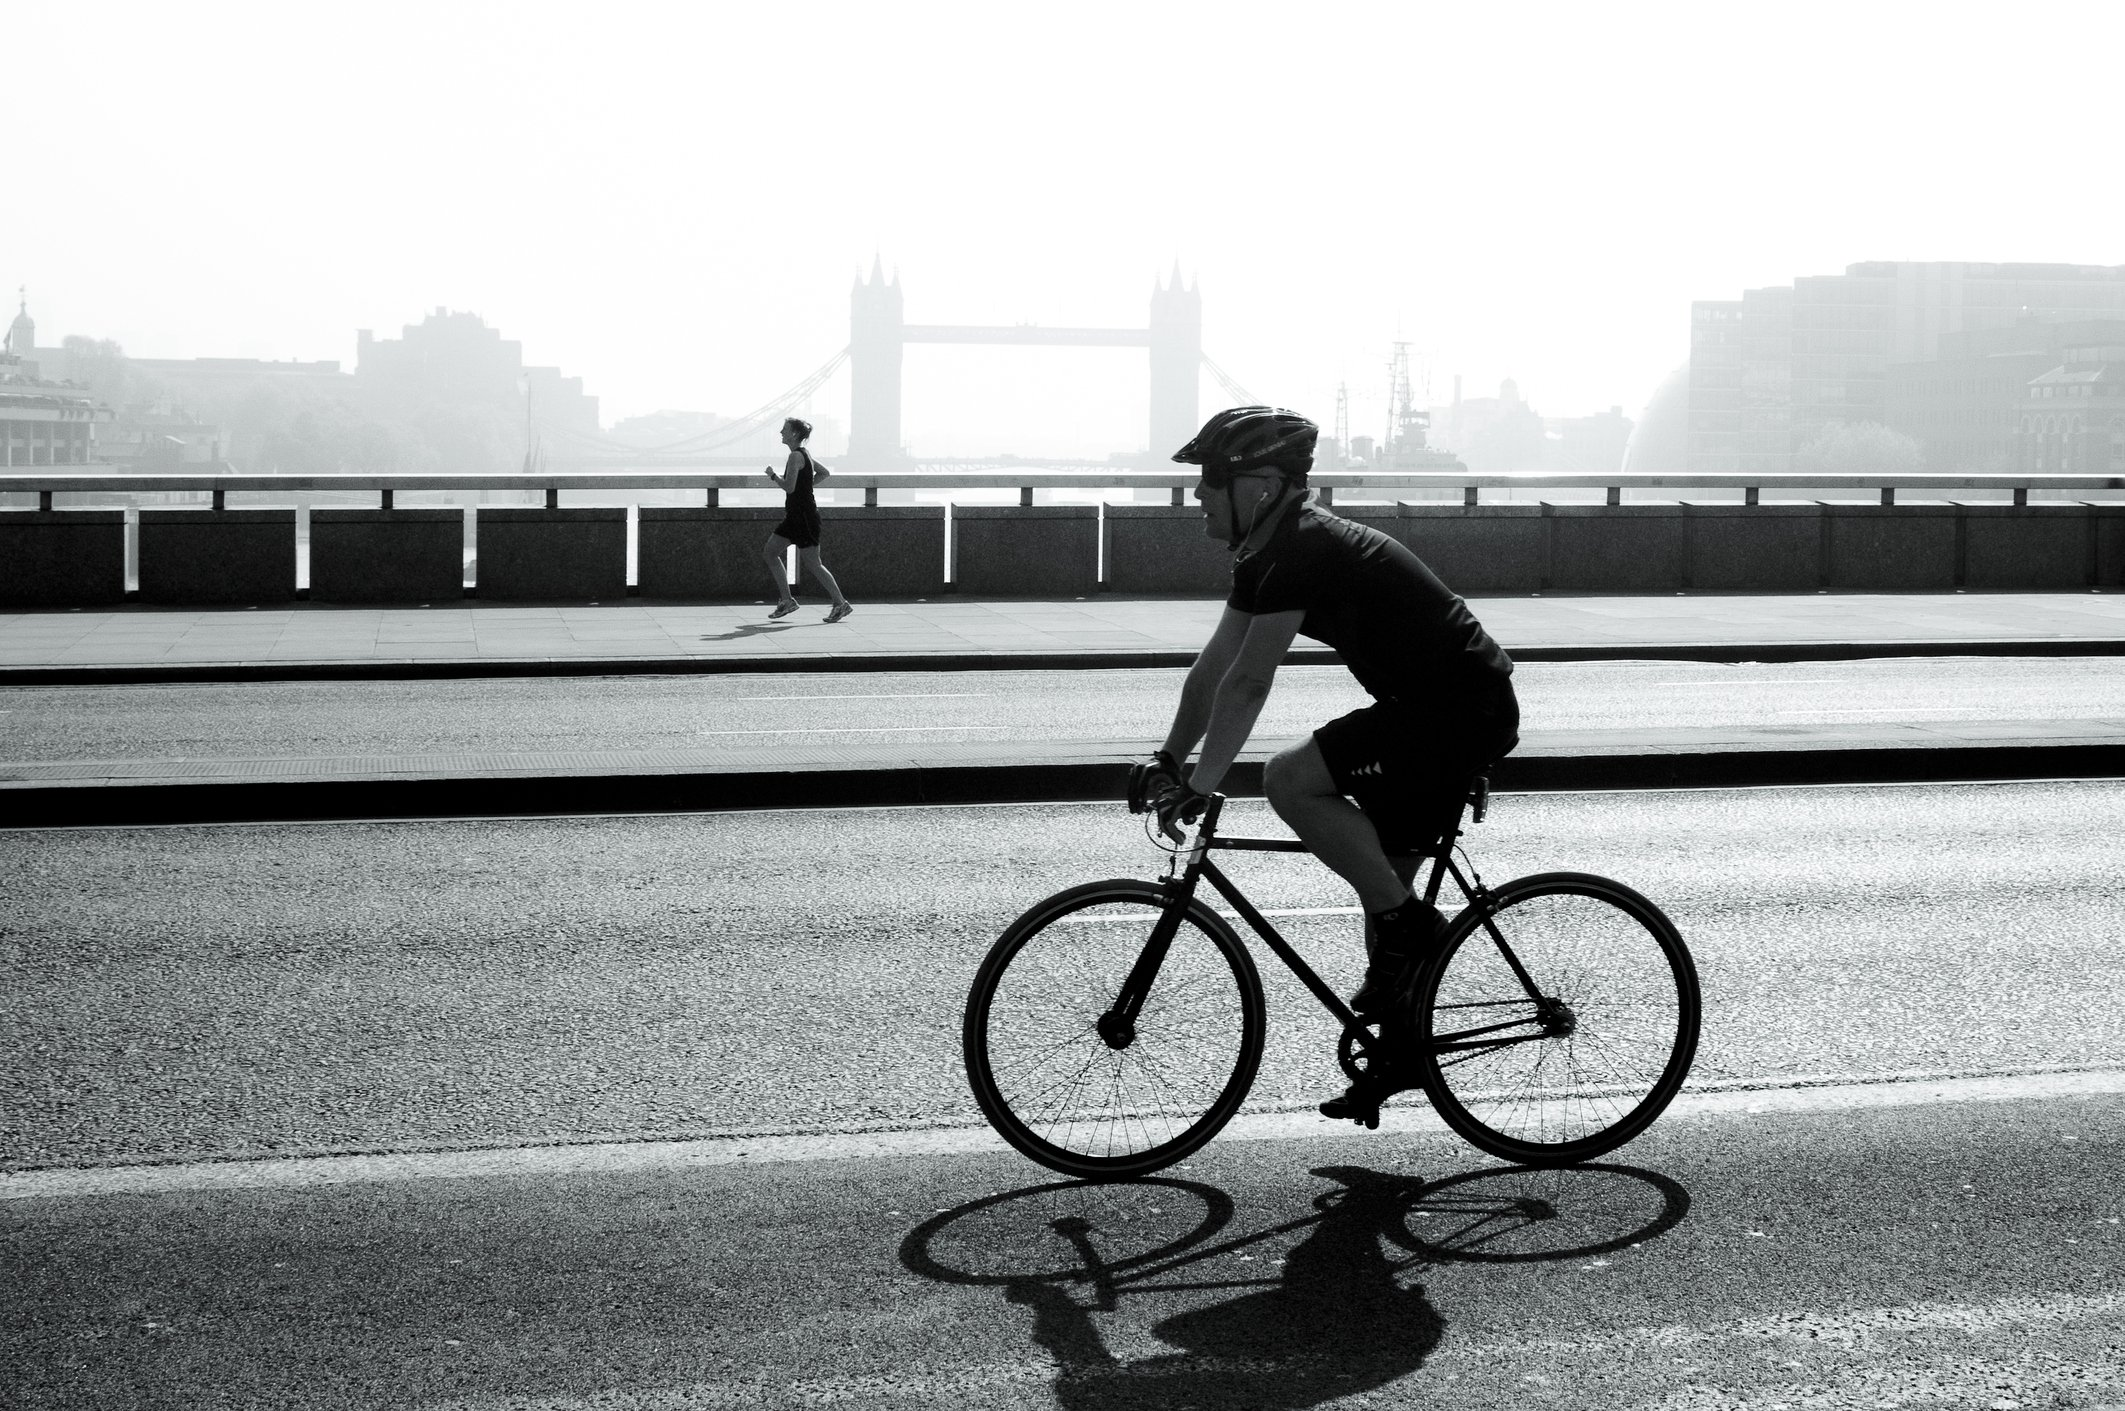 Cyclist London - transport in London